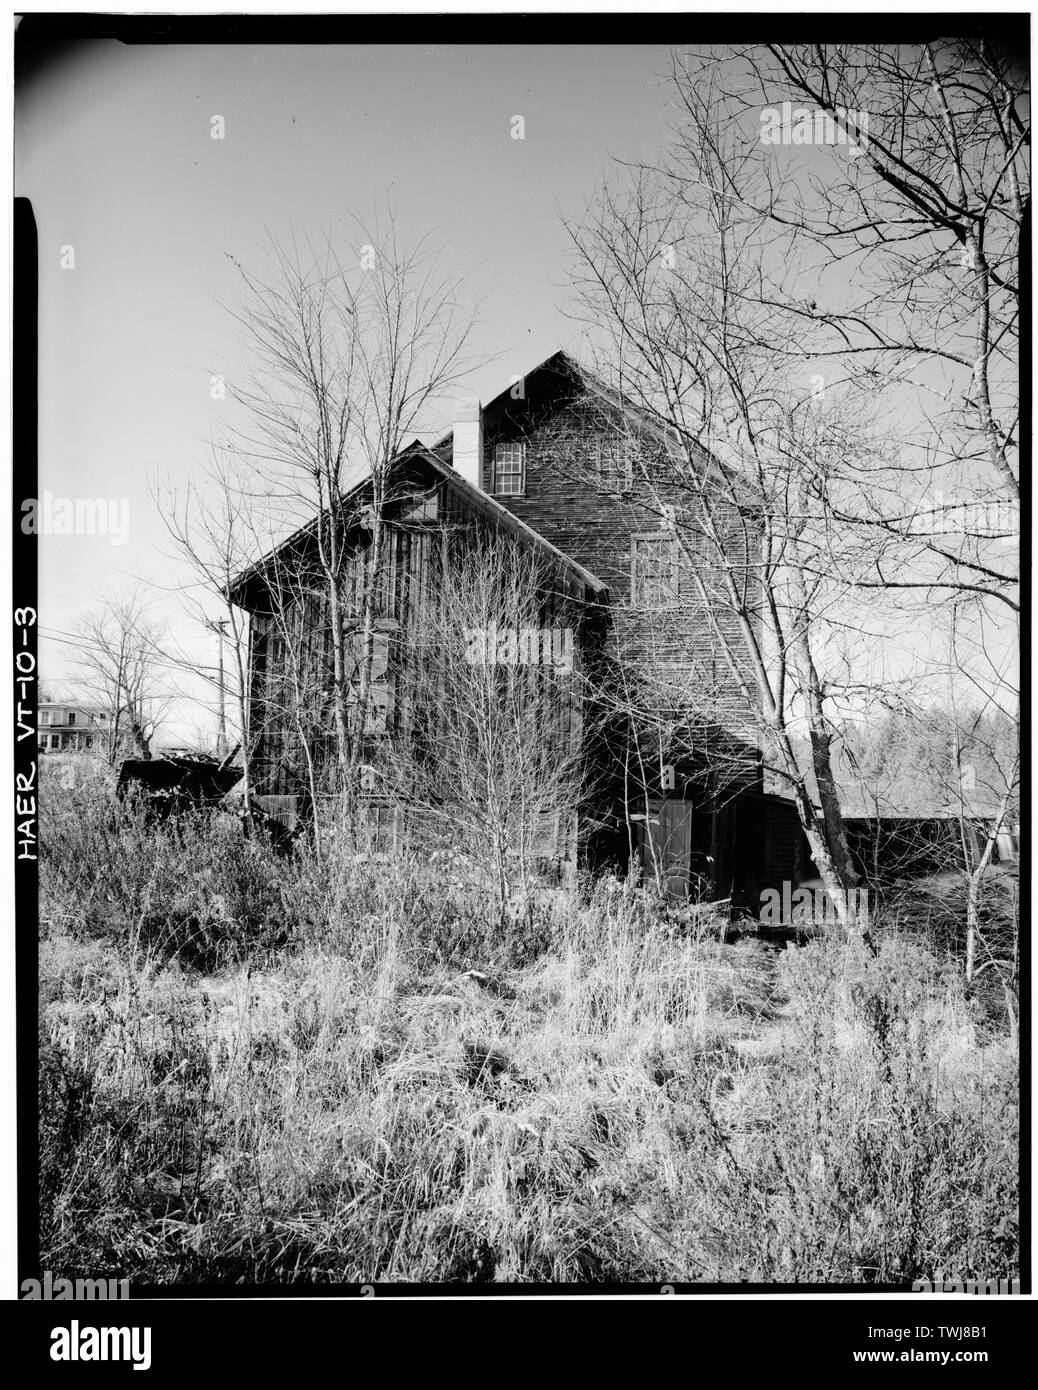 Side (southeast) elevation of Blacksmith Shop and Woodworking Mill. Timber frame and plank dam in right background; Ben Thresher's house in left background. - Ben Thresher's Mill, State Aid No. 1, Barnet, Caledonia County, VT; Rockefeller, Laurance S; Jack, Alexander; Judkins, James Loren; Stevens, Willard; Stevens, Henry; Gleason, Samuel; Barnet Cotton and Woolen Manufacturing Company; Herrin, John; Greenbank, Thomas; Greenbank, George; Taylor, James; Goodwillie, James; Shaw, William; McLaren, James; Somers, James S; Alexander Jack's Dye and Print Works; Smith, Isaac M; Bishop, Ora; Ford, Elm - Stock Image